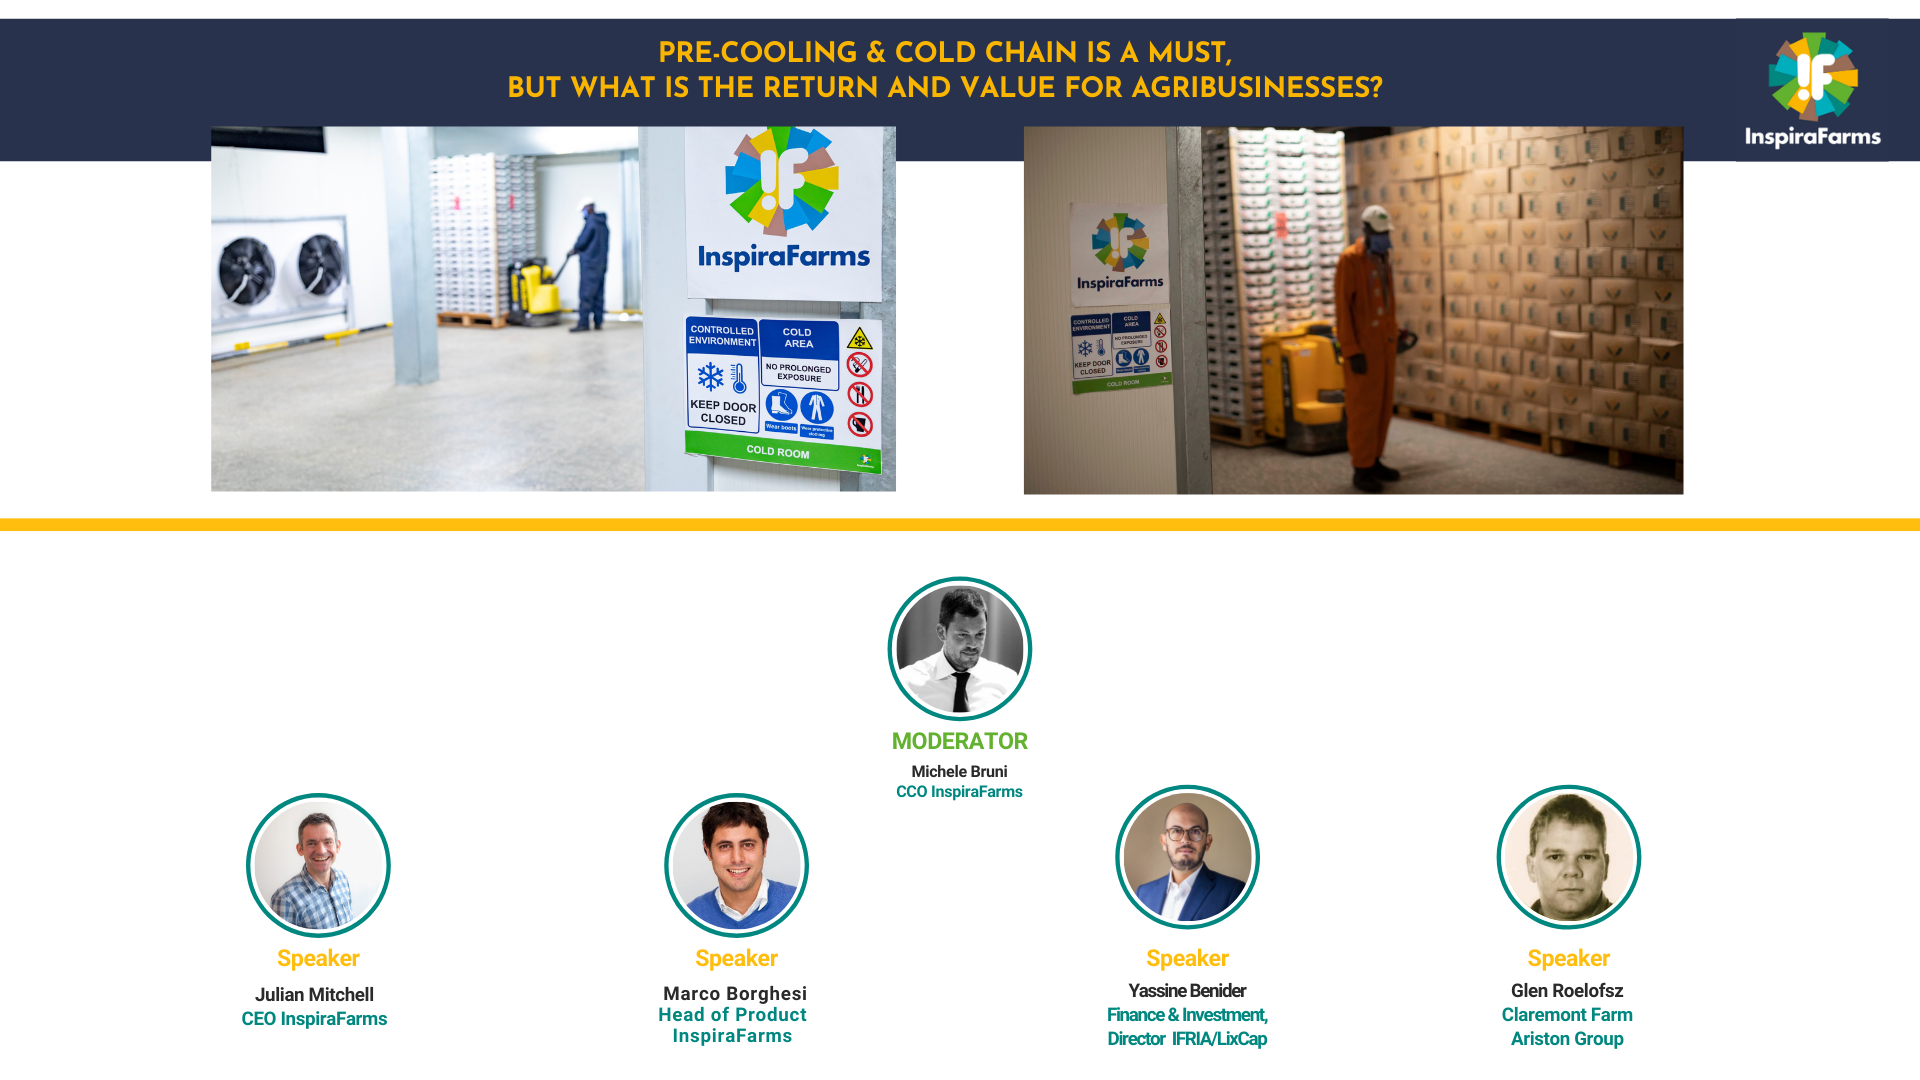 Pre-cooling & cold chain is a must, but what's the ROI